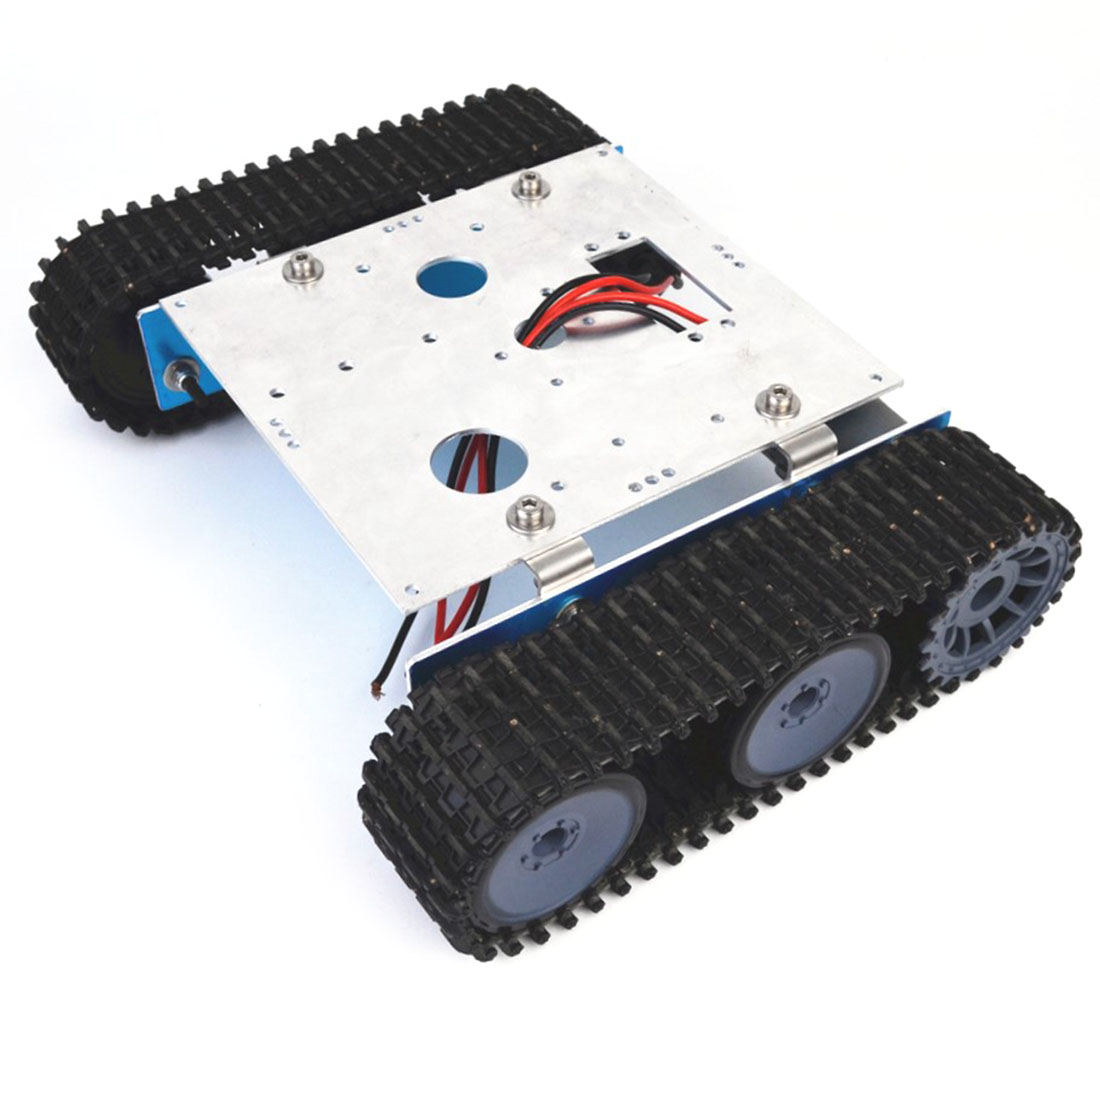 Aluminium Alloy DIY Tank Robot Caterpillar Vehicle Platform Chassis Assembly Kit For Arduino